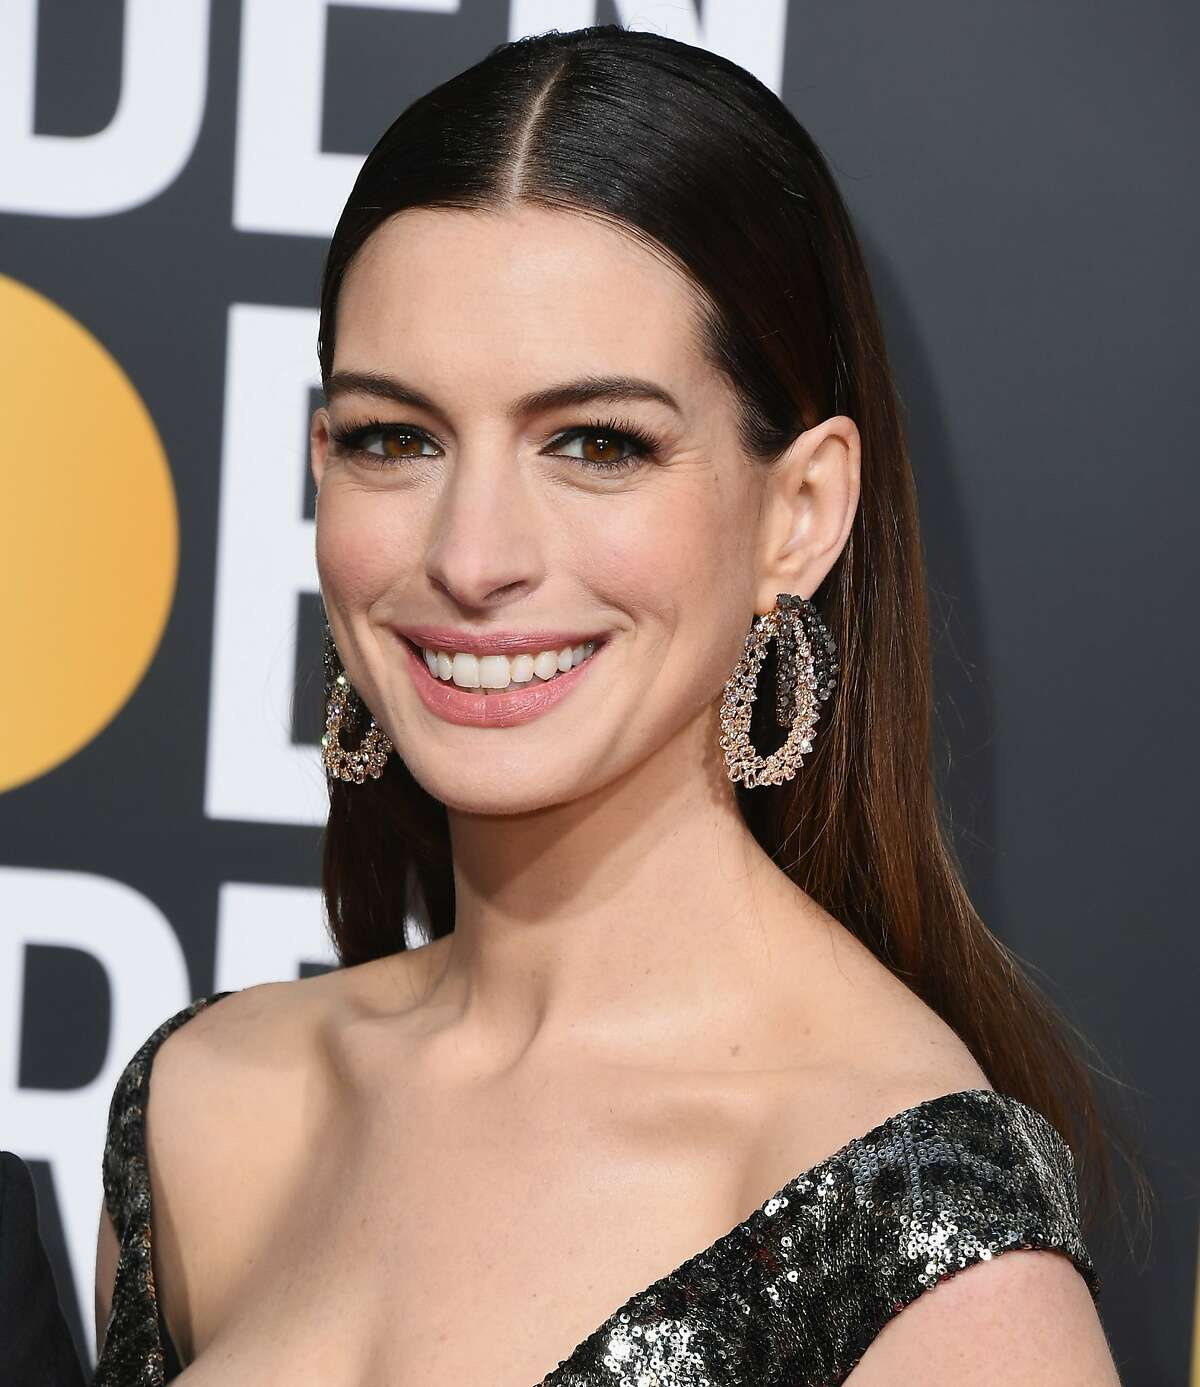 Early in her career Anne Hathaway was offered a show on Broadway. But she was reluctant to move so far from home.